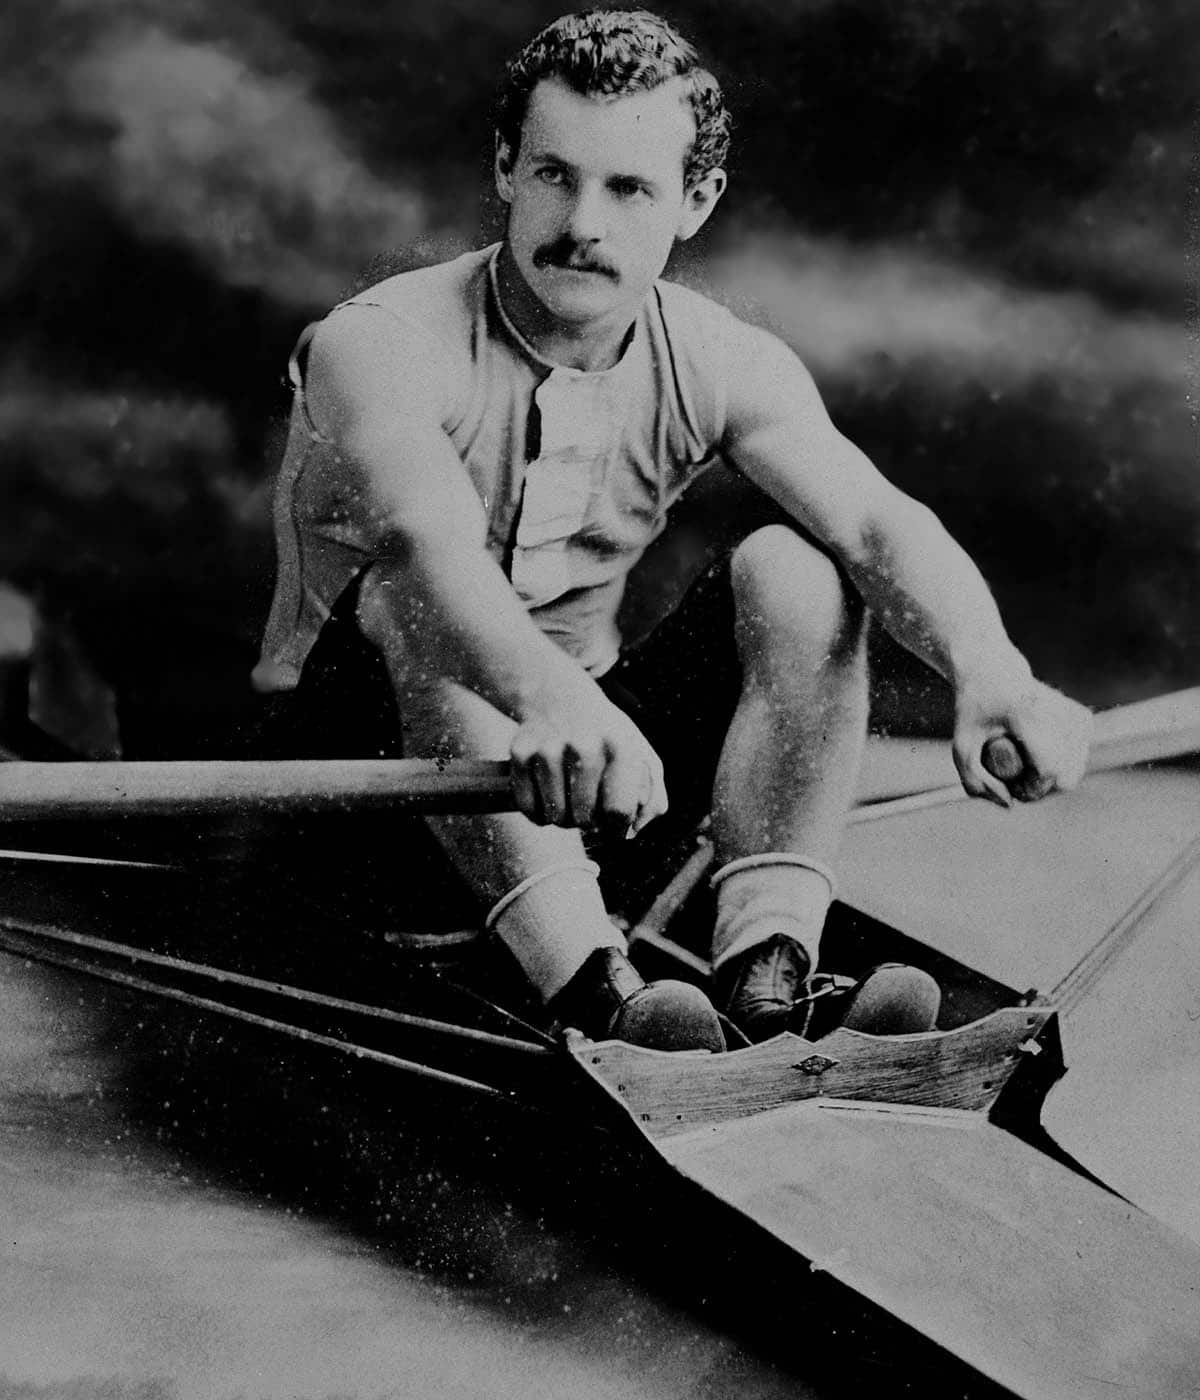 The Scandalous Sculler: Almost 150 years ago, Ned Hanlan became Canada's first superstar